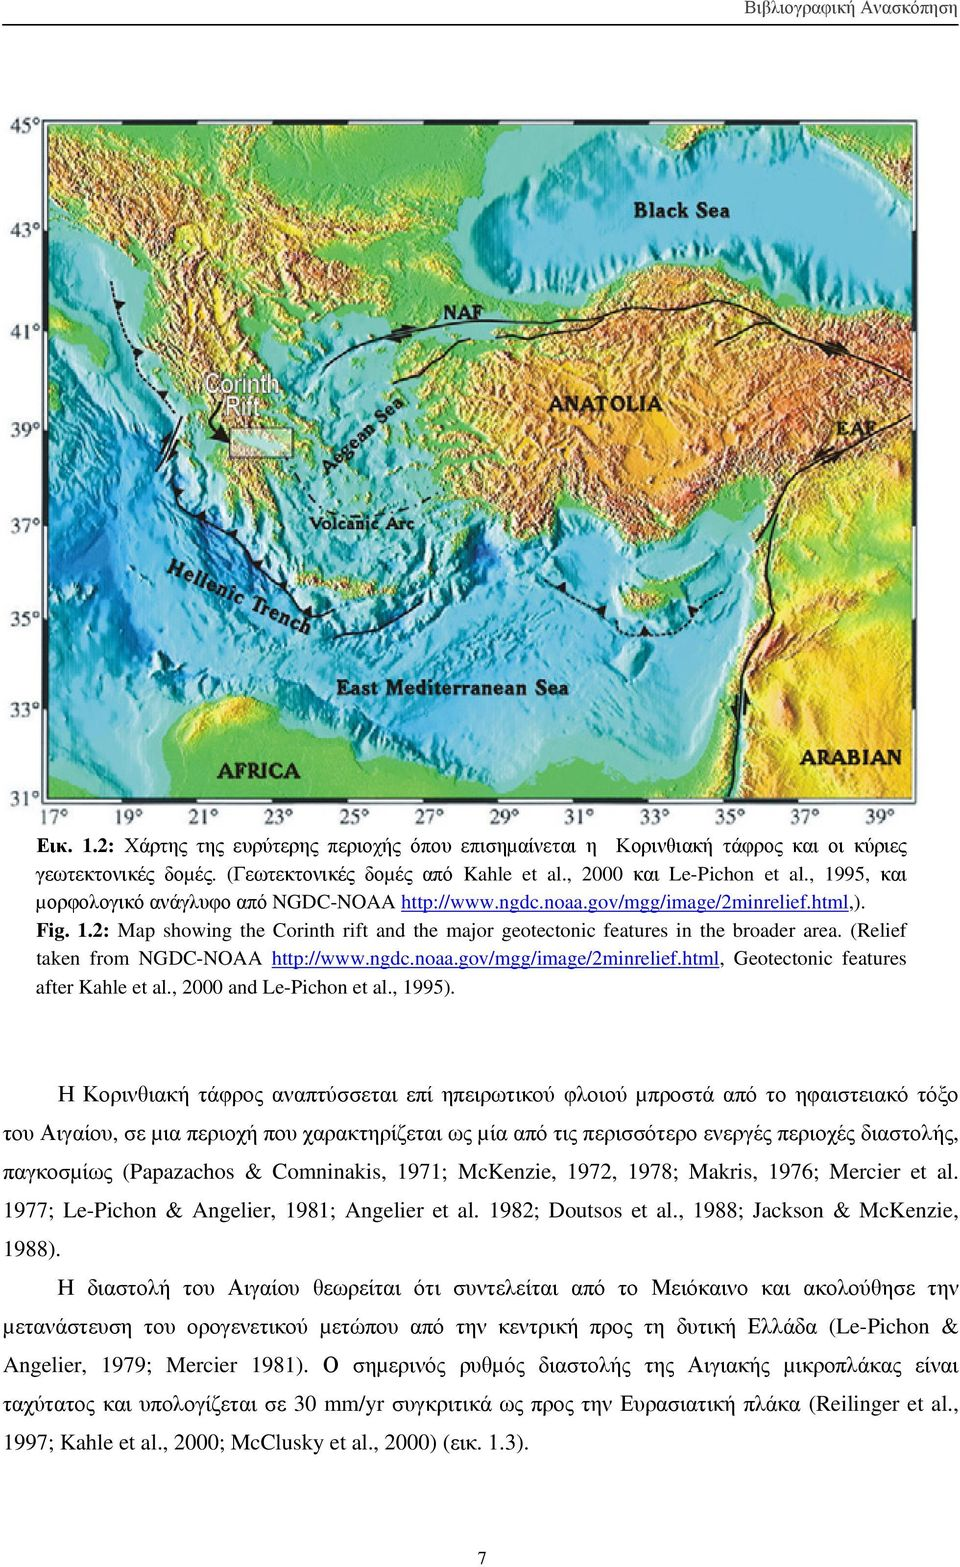 (Relief taken from NGDC-NOAA http://www.ngdc.noaa.gov/mgg/image/2minrelief.html, Geotectonic features after Kahle et al., 2000 and Le-Pichon et al., 1995).